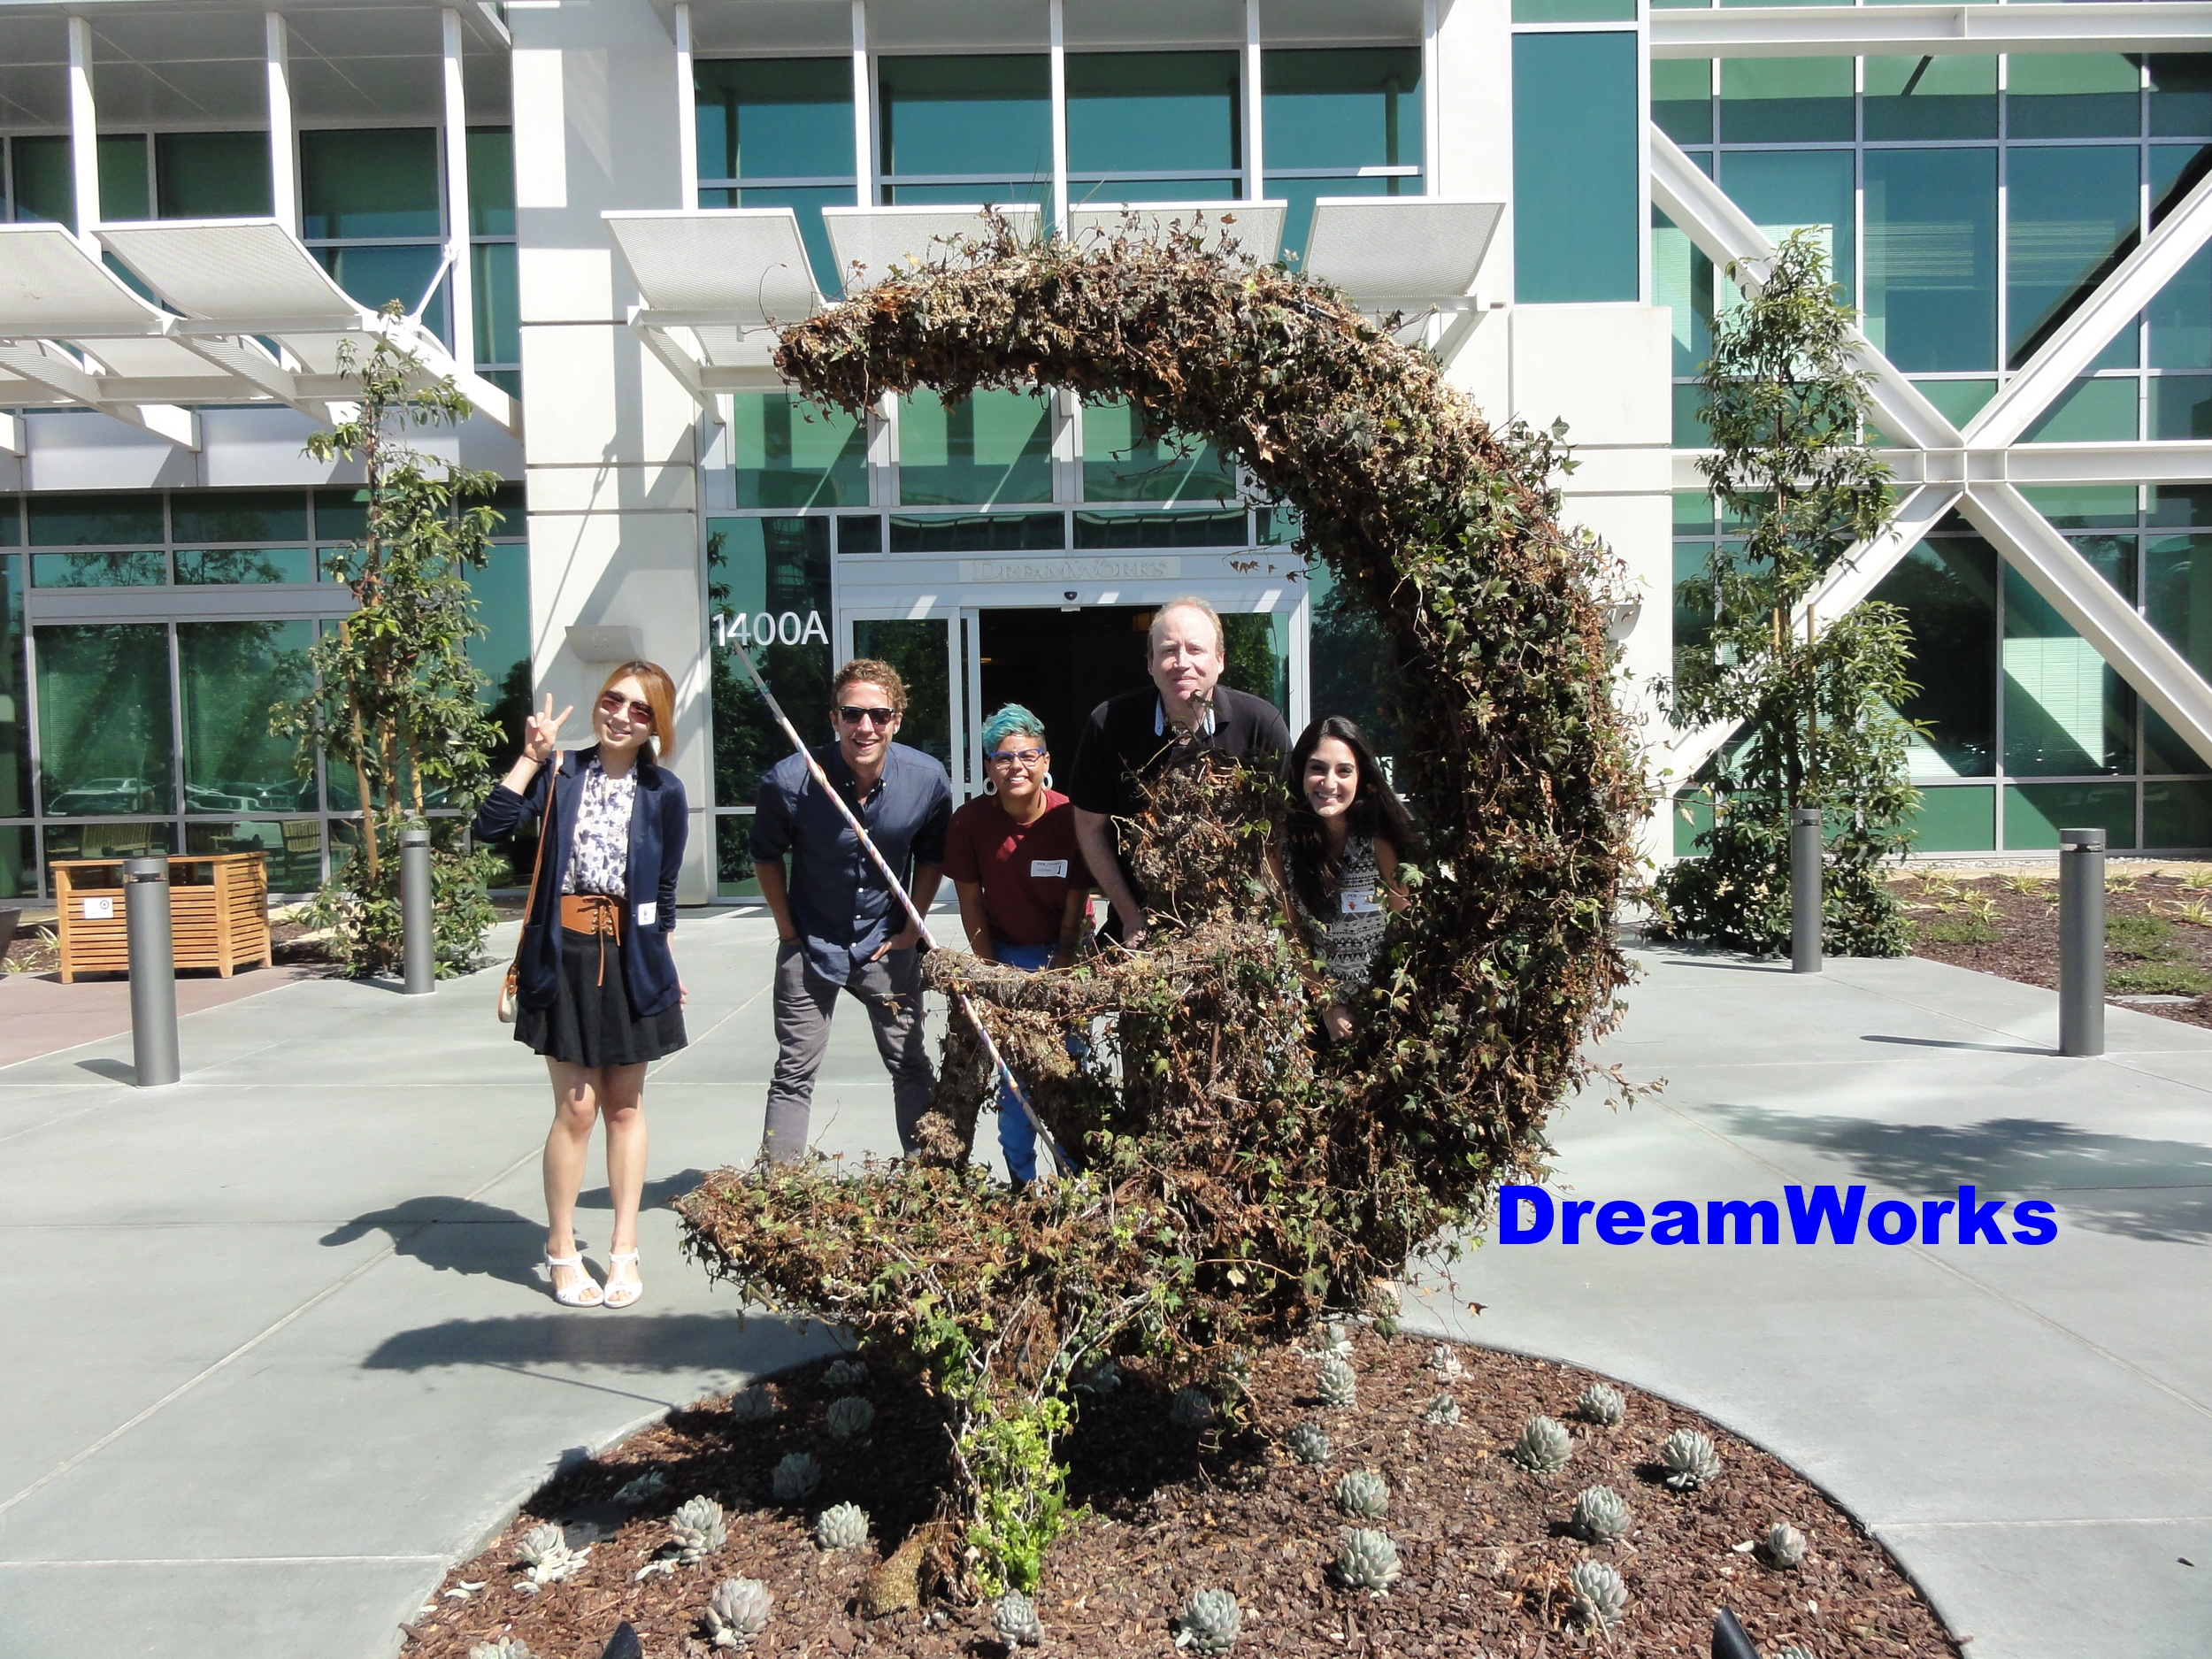 At Dreamworks with students.JPG